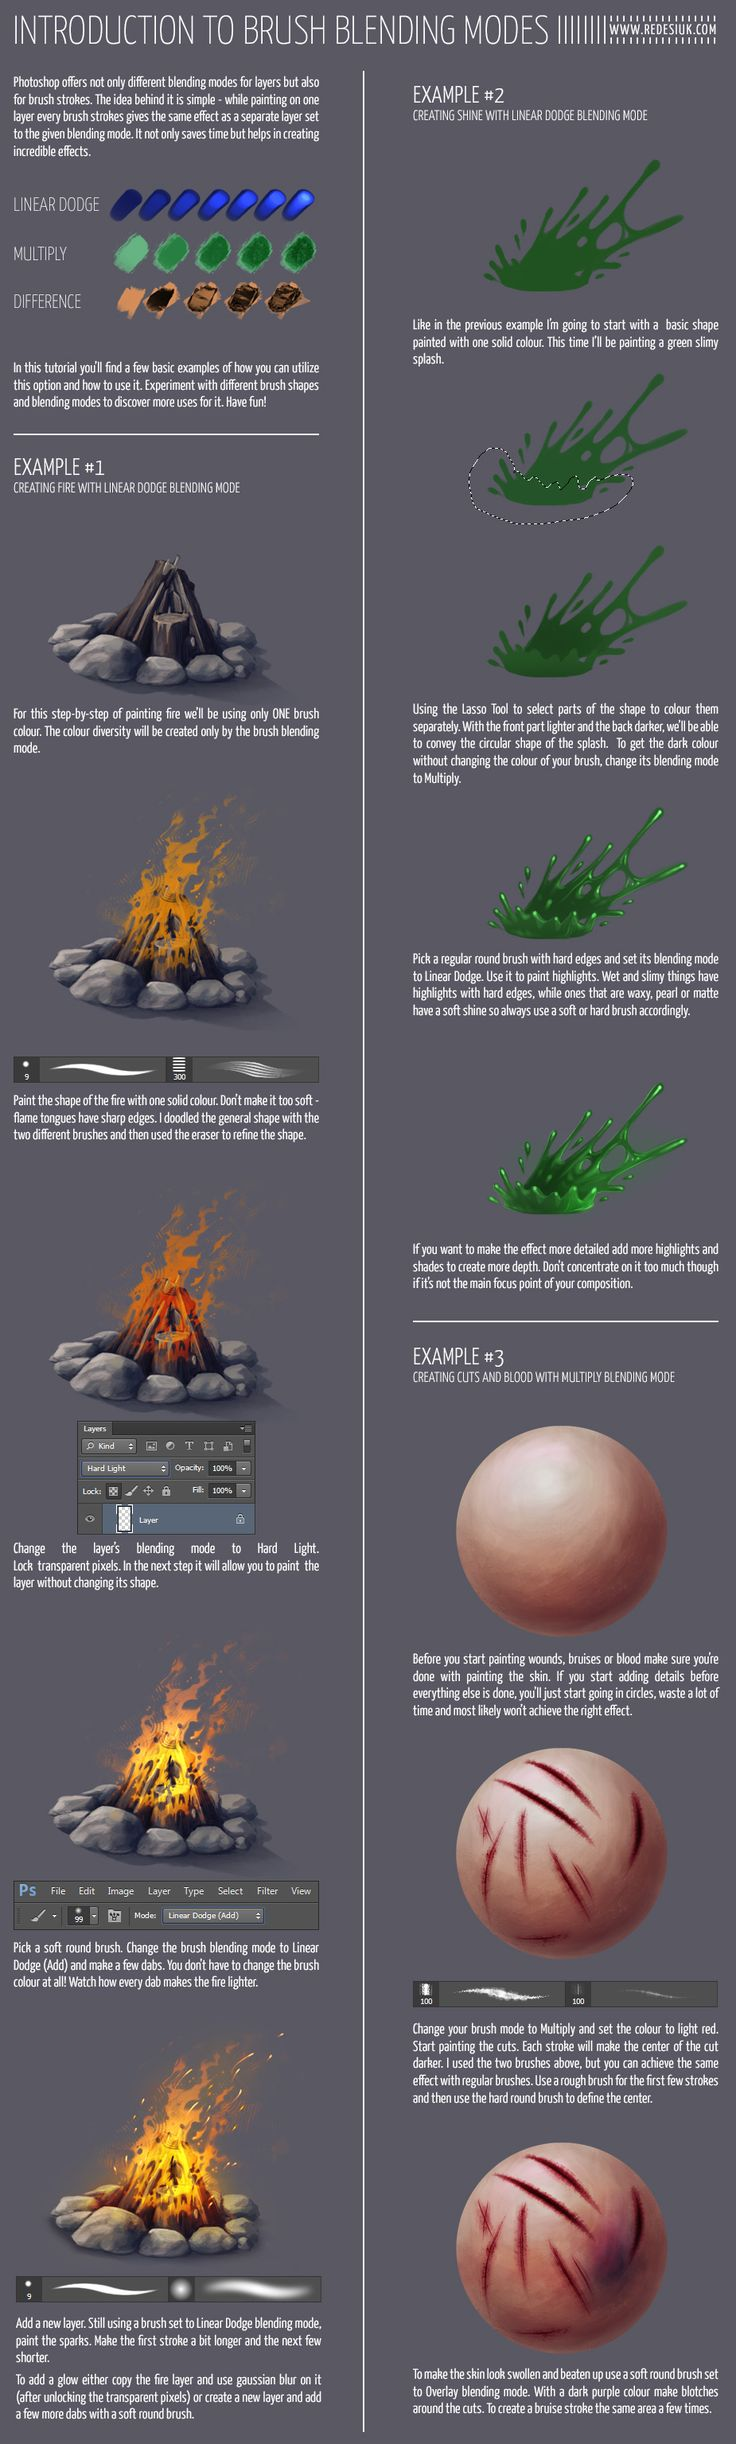 Brush blending modes - tutorial by tanathe.deviantart.com on @deviantART#photoshop #drawing